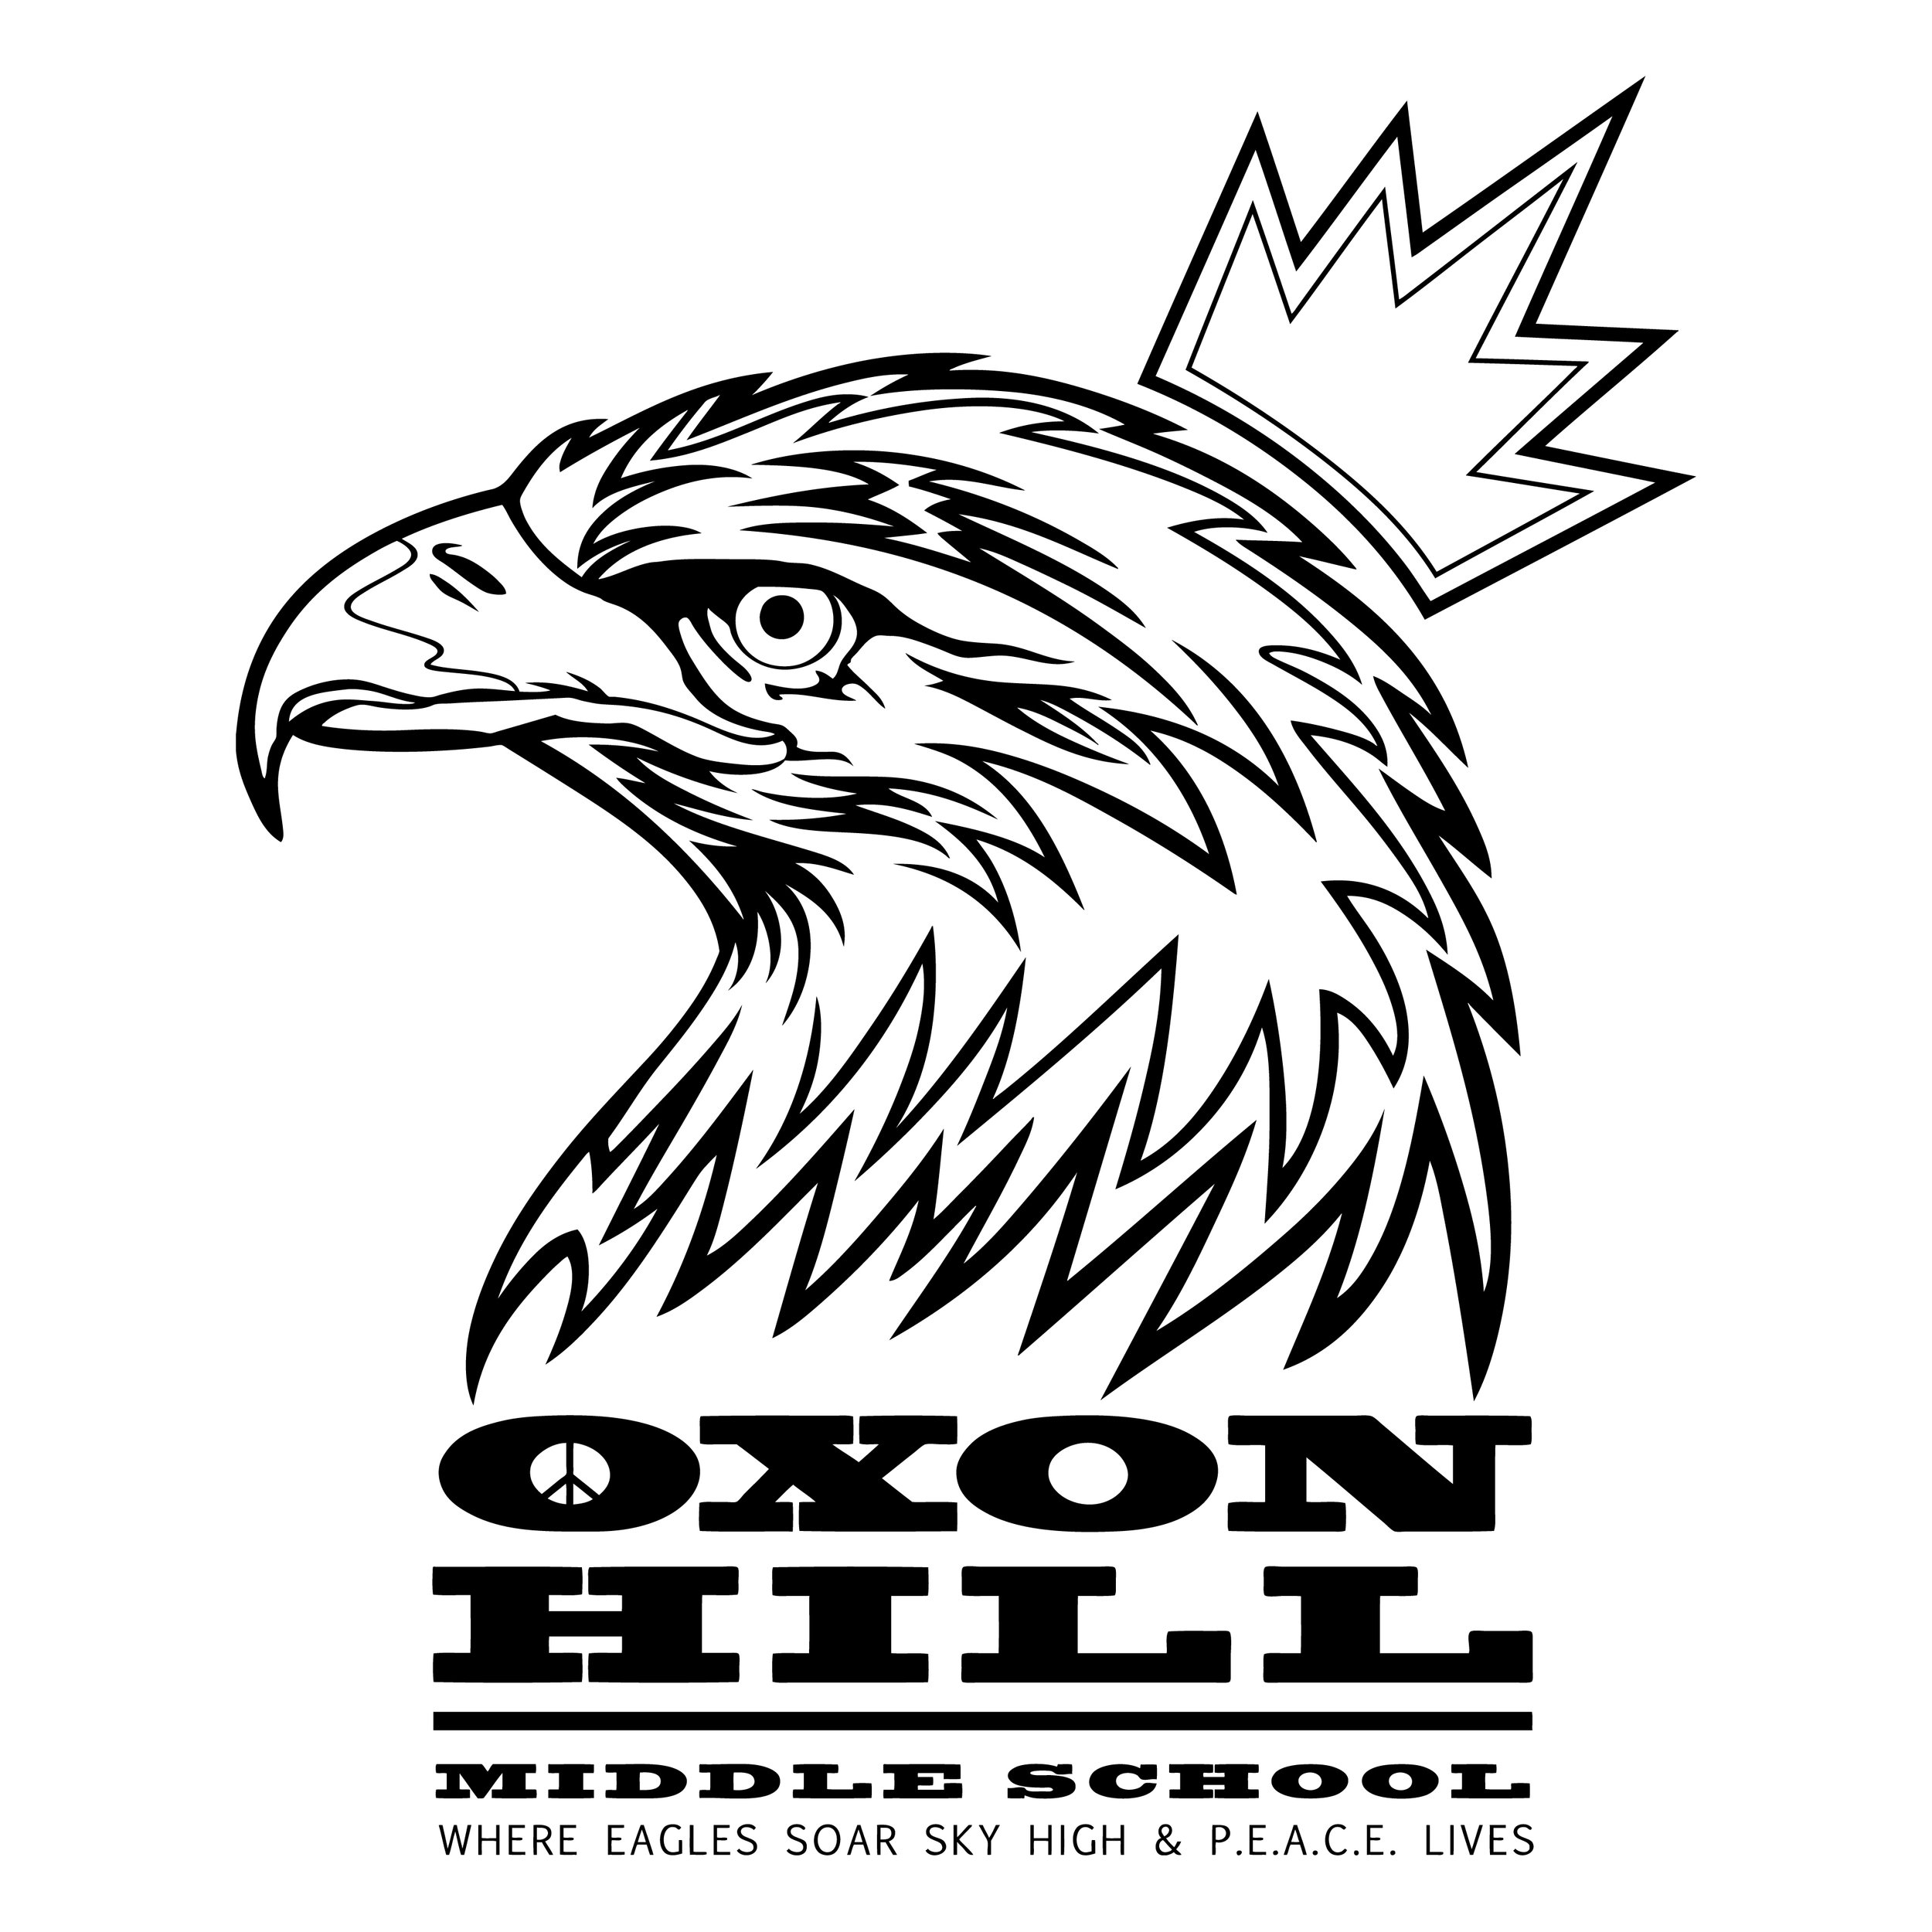 Designed for  Oxon Hill Middle School  by  S. Robinson